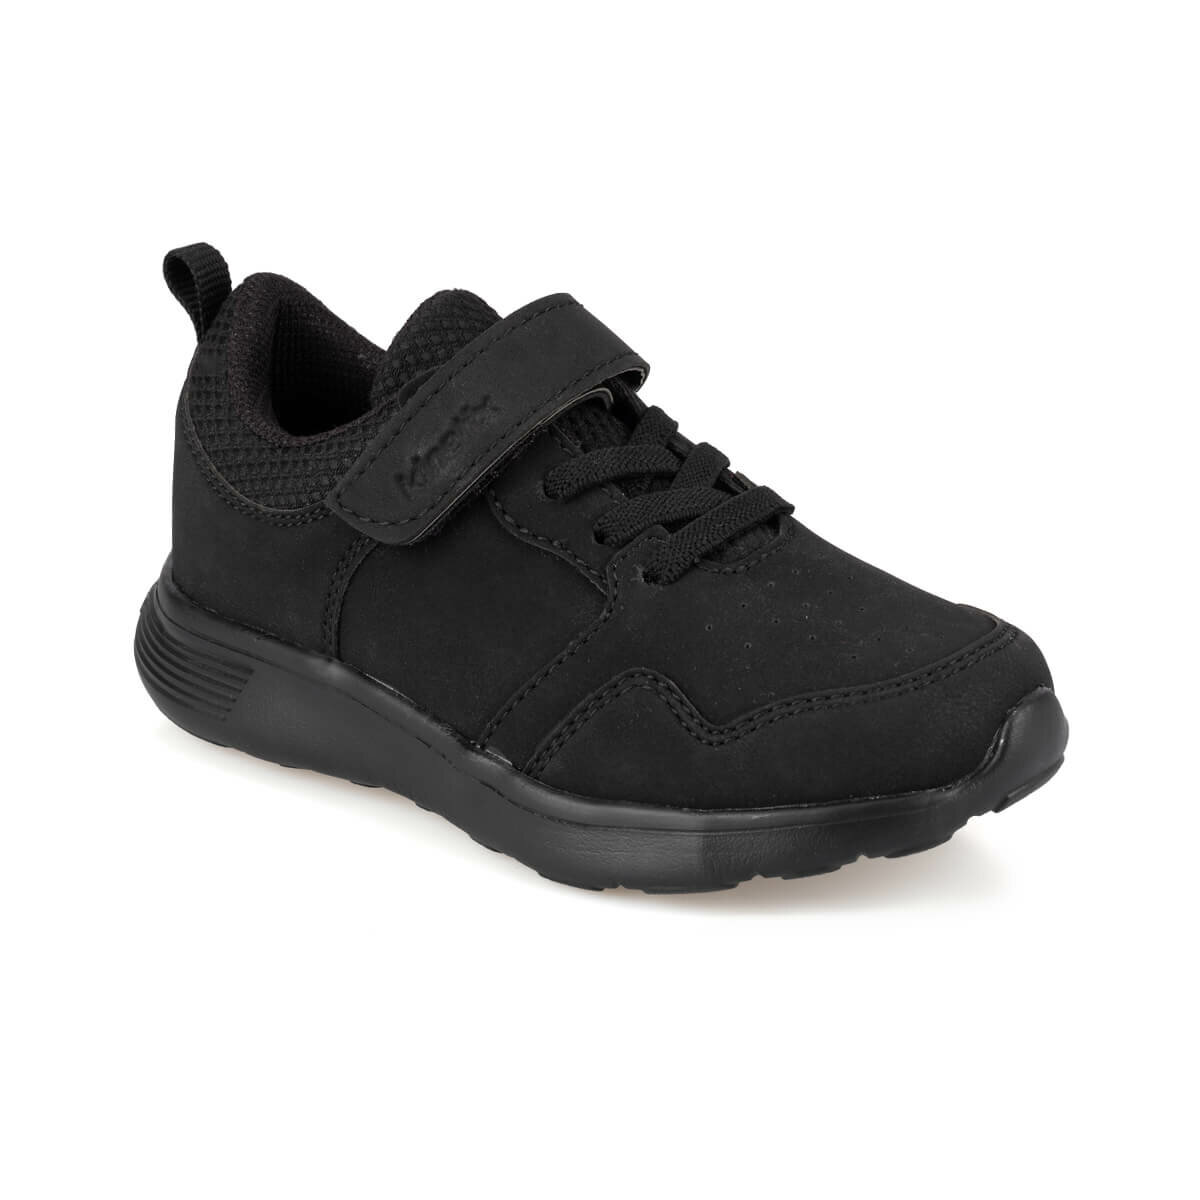 FLO HAYNES 9PR Black Male Child Shoes KINETIX